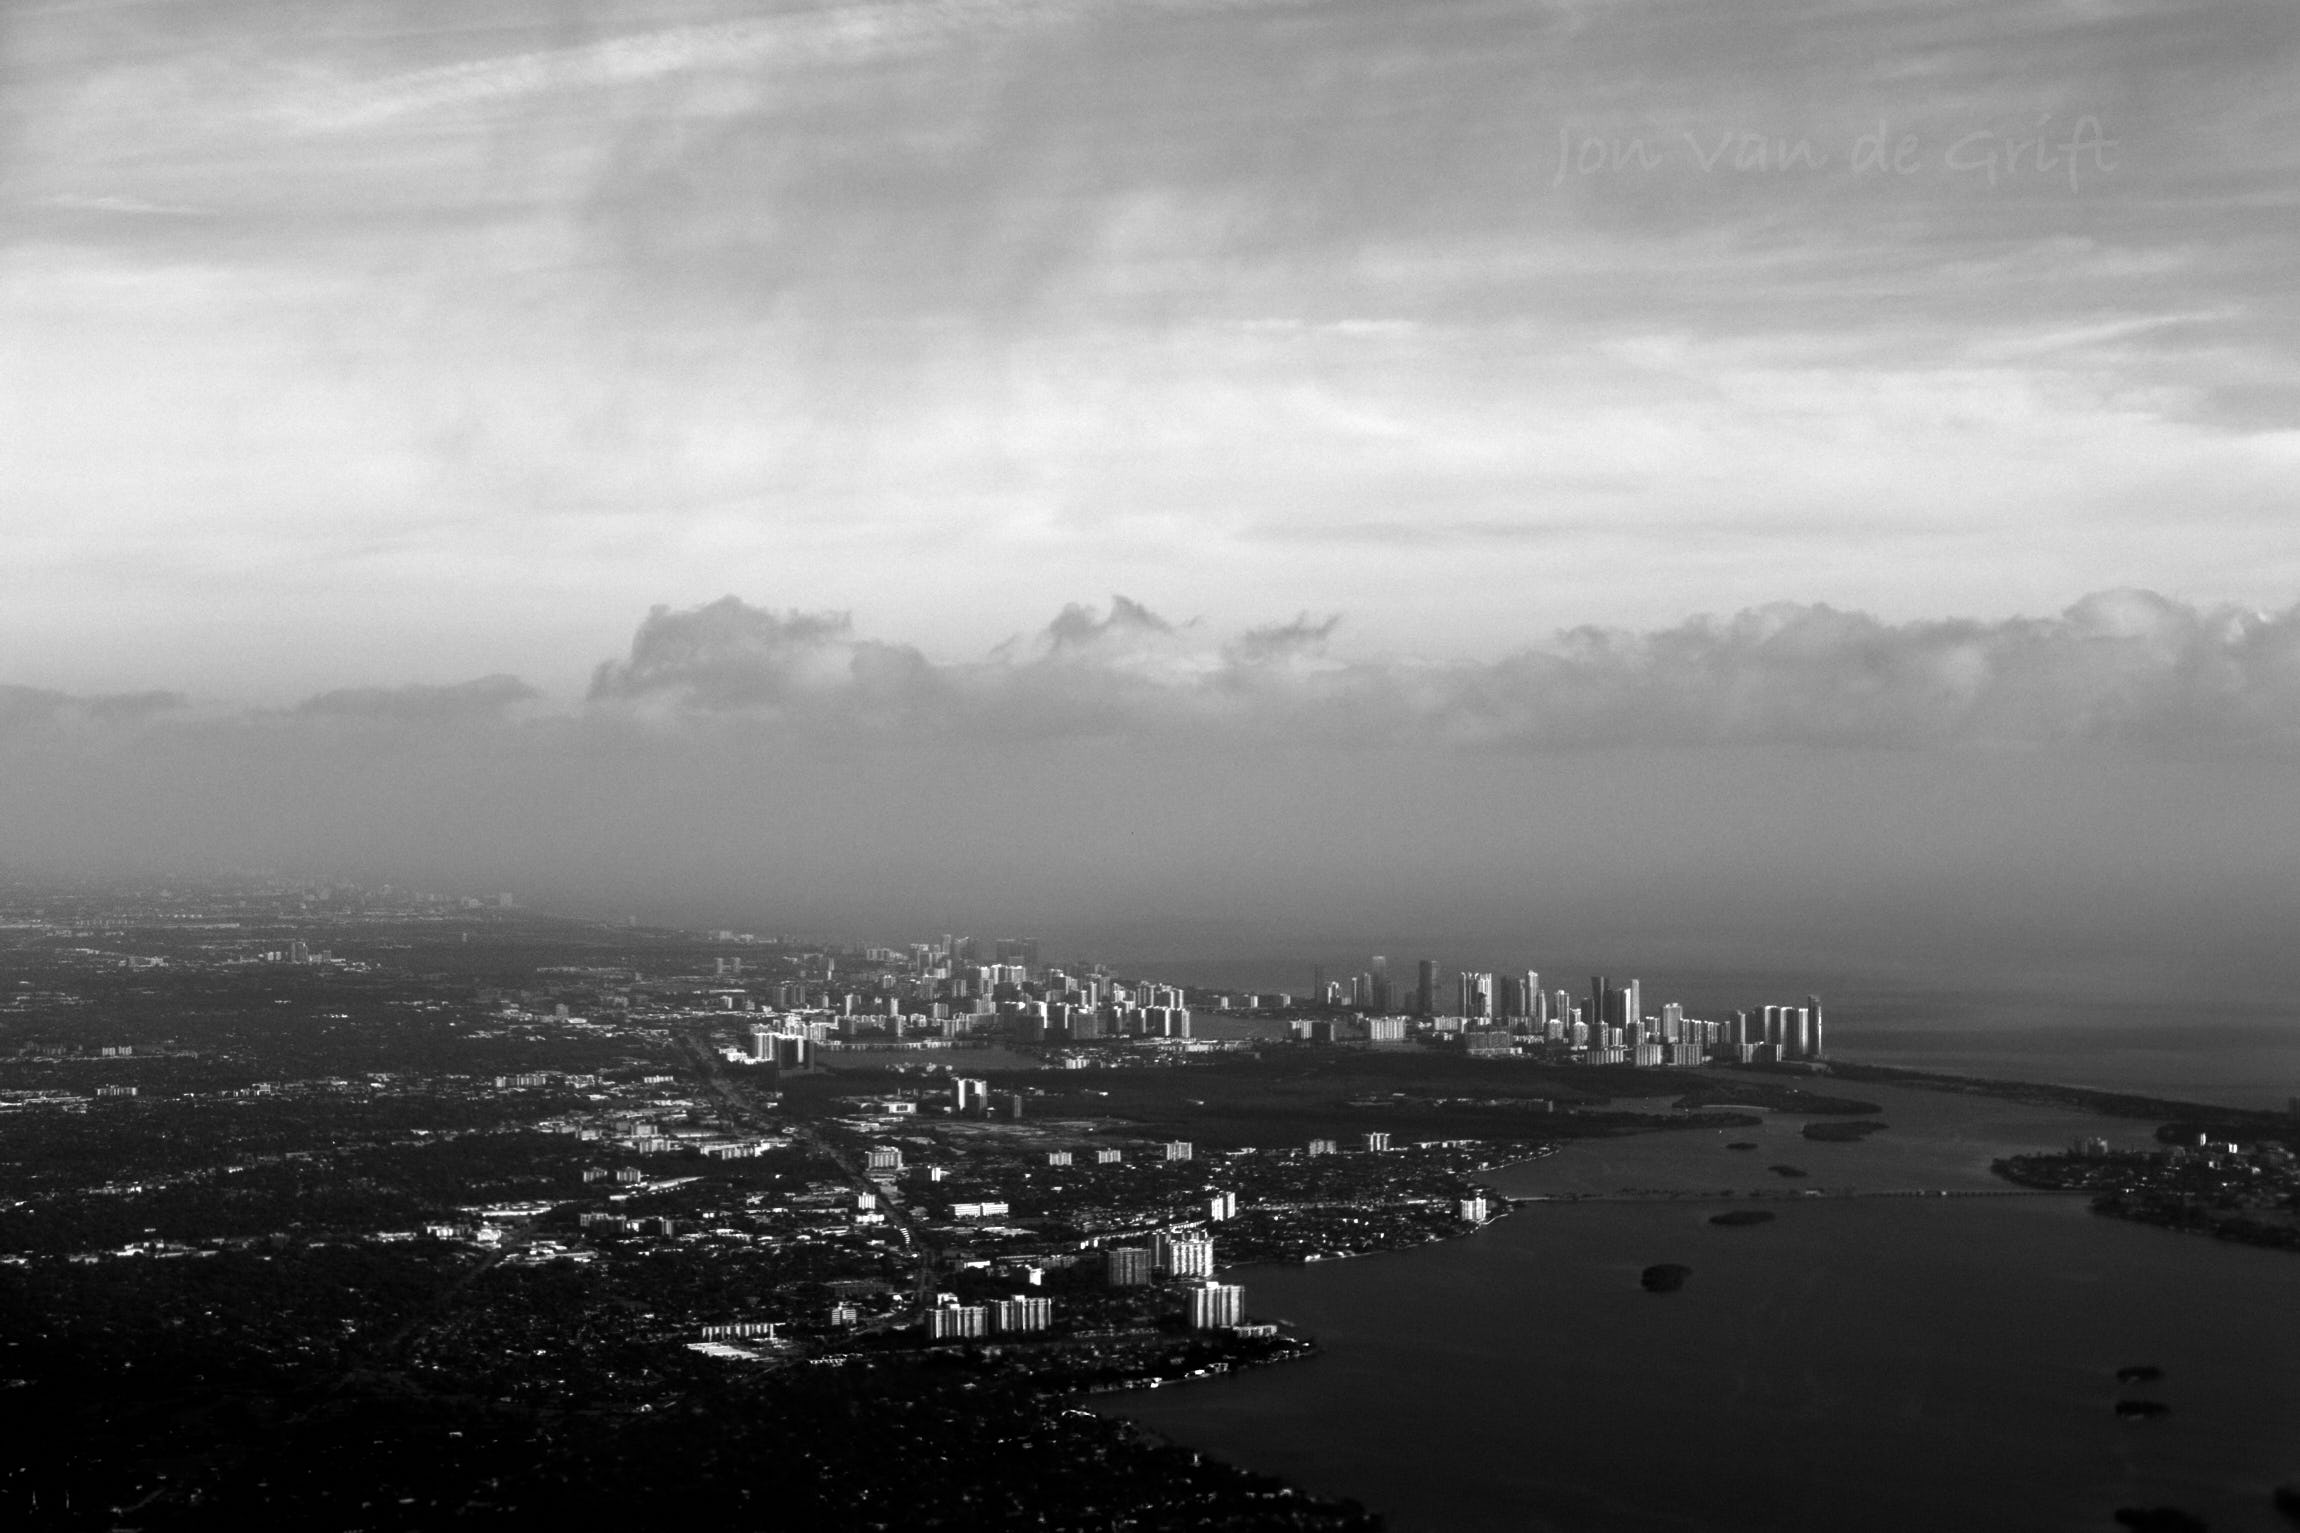 Black and white aerial photograph of buildings near the city of Miami.